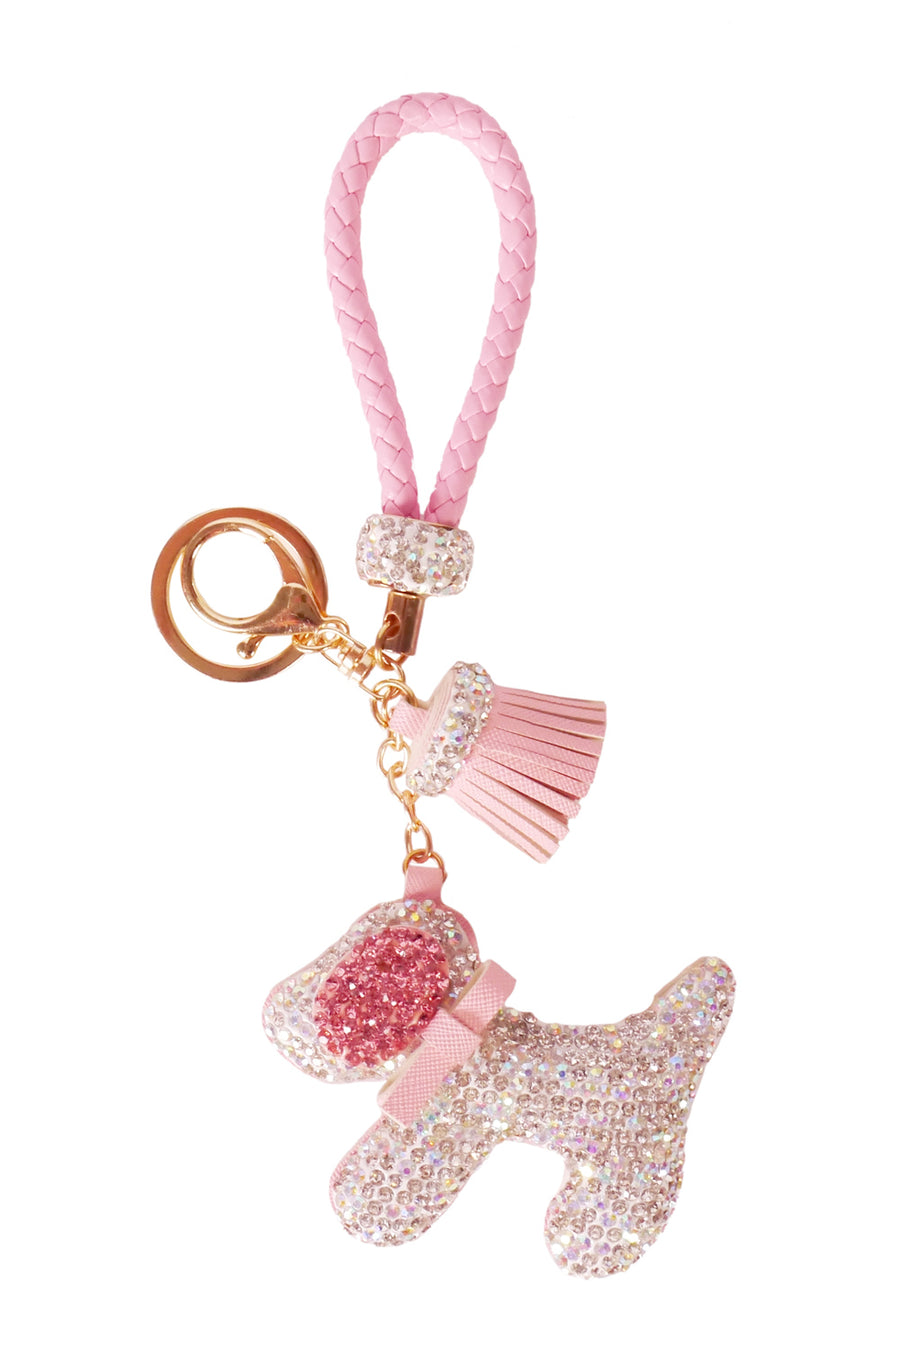 Diamond Charm Dog - Gold/Pink - Bewaltz